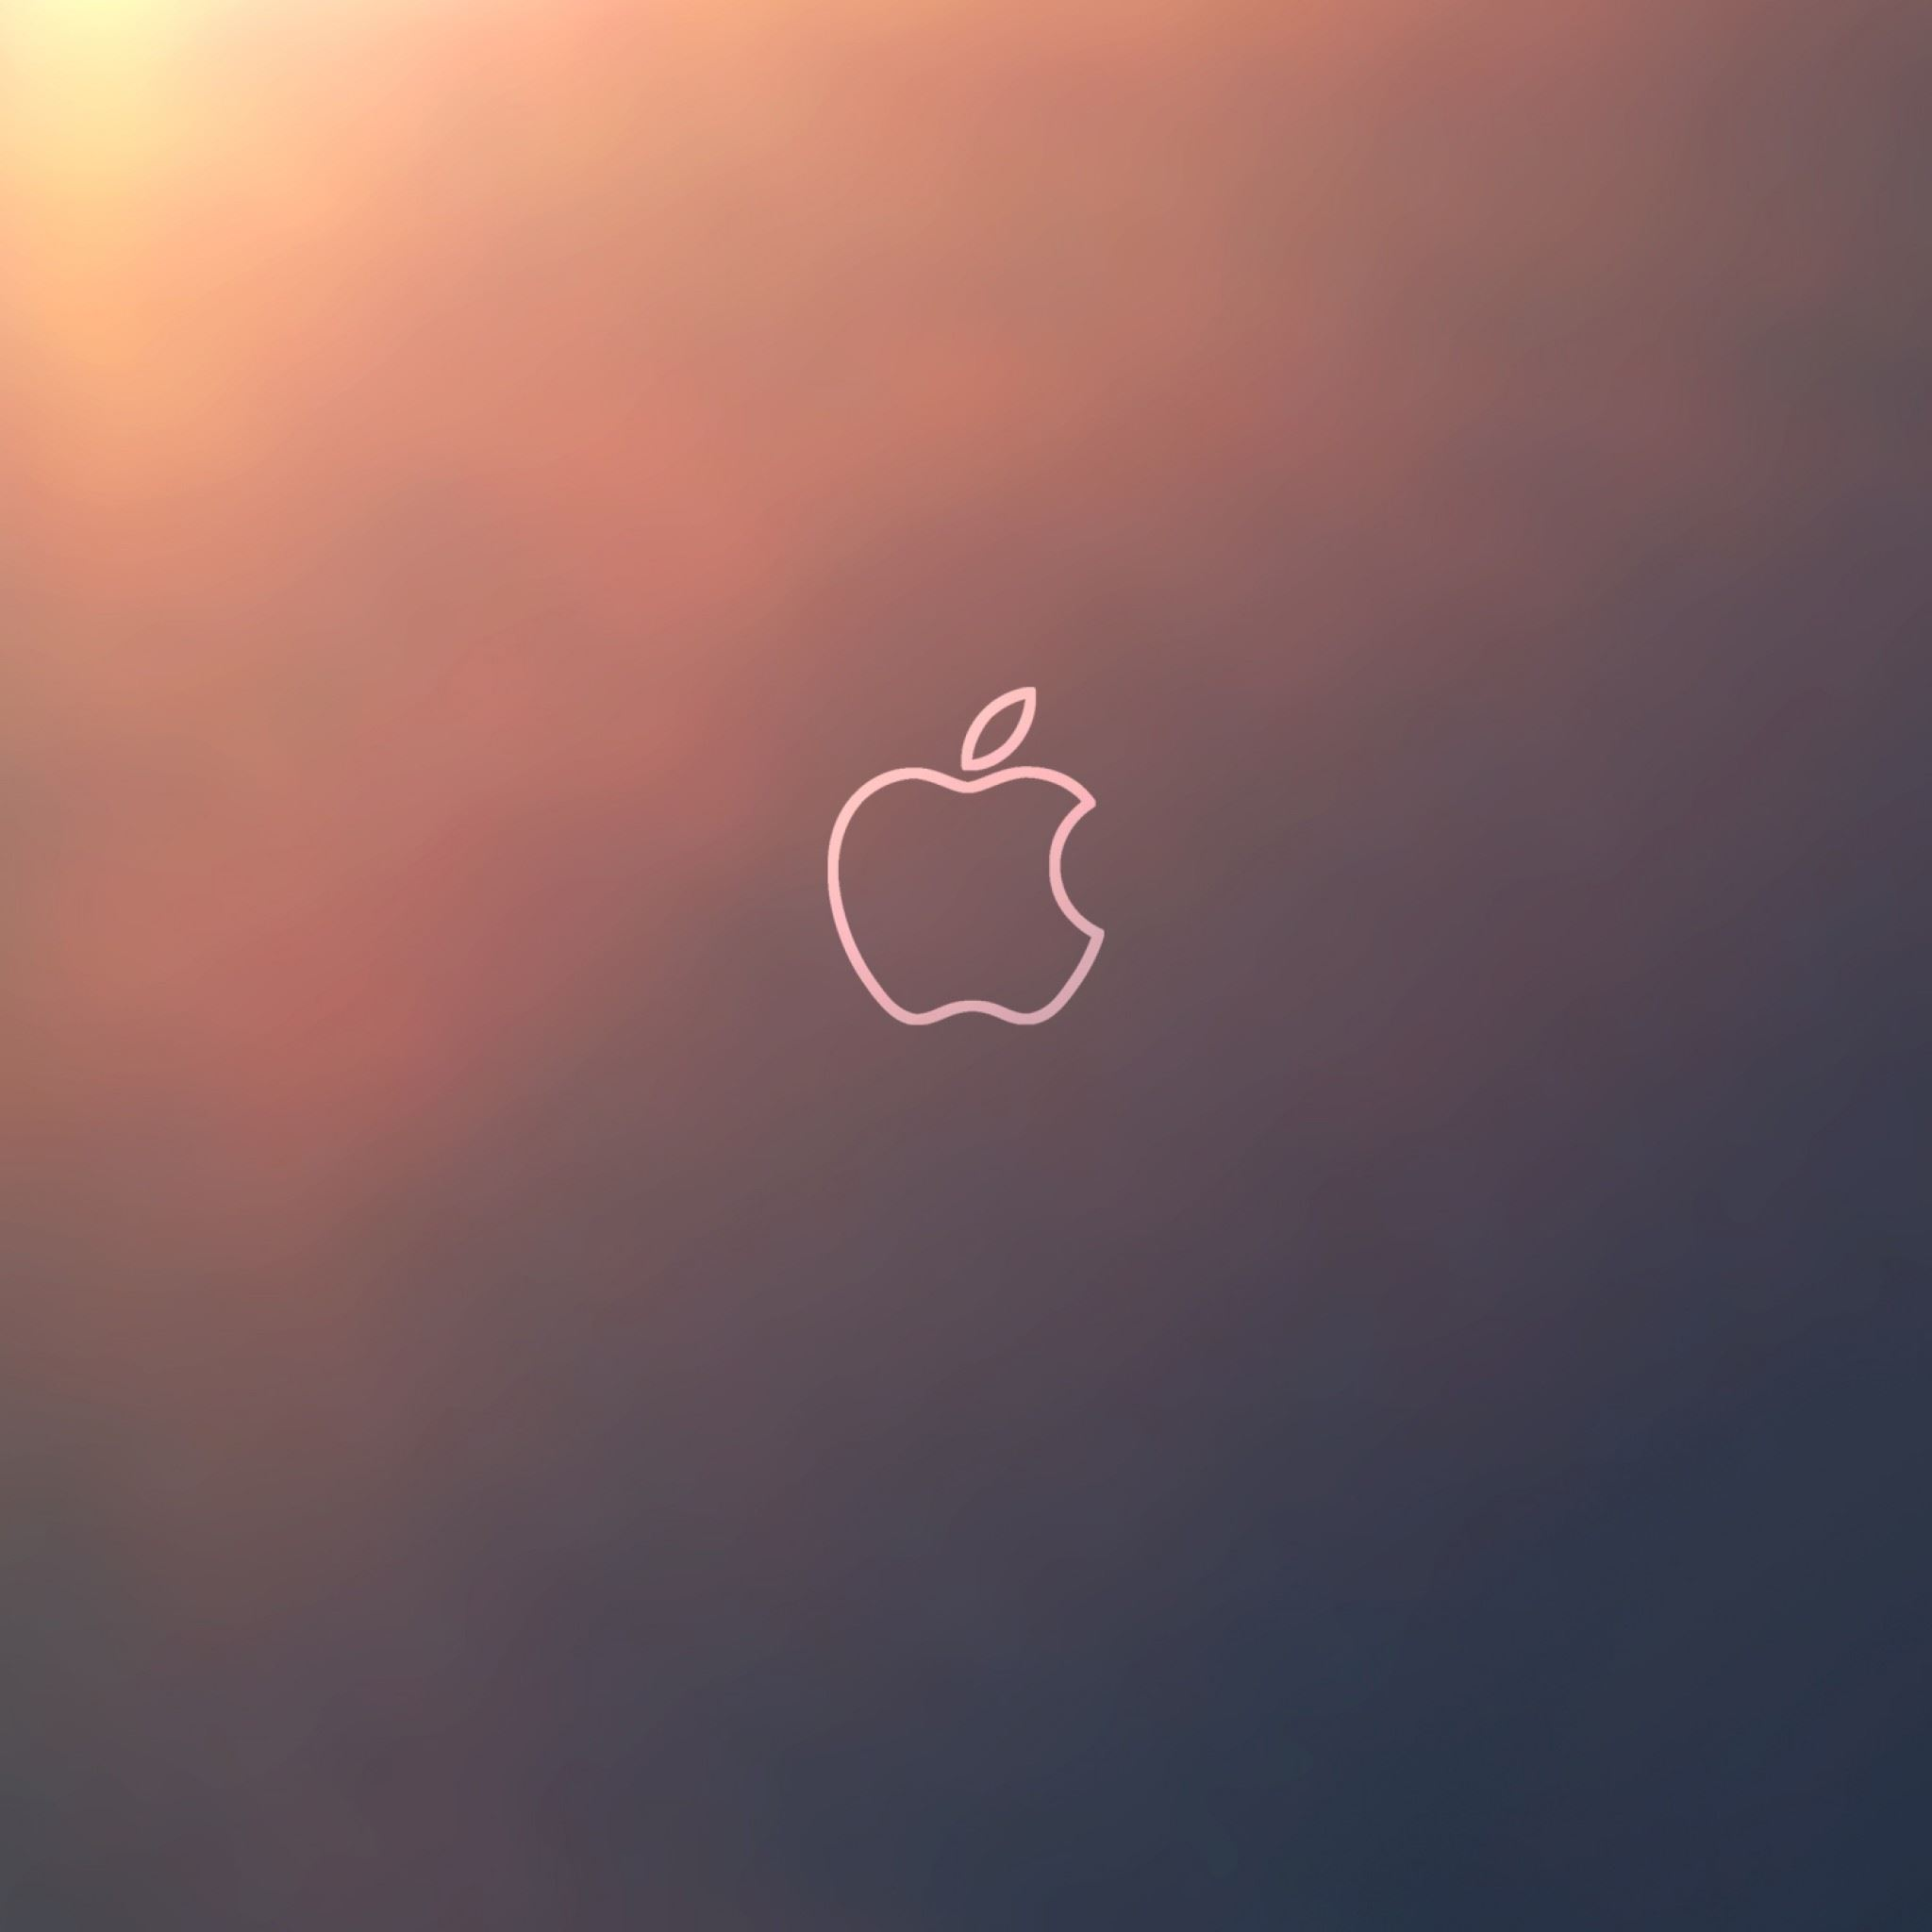 Apple Fluorescence Brand iPad Air wallpaper